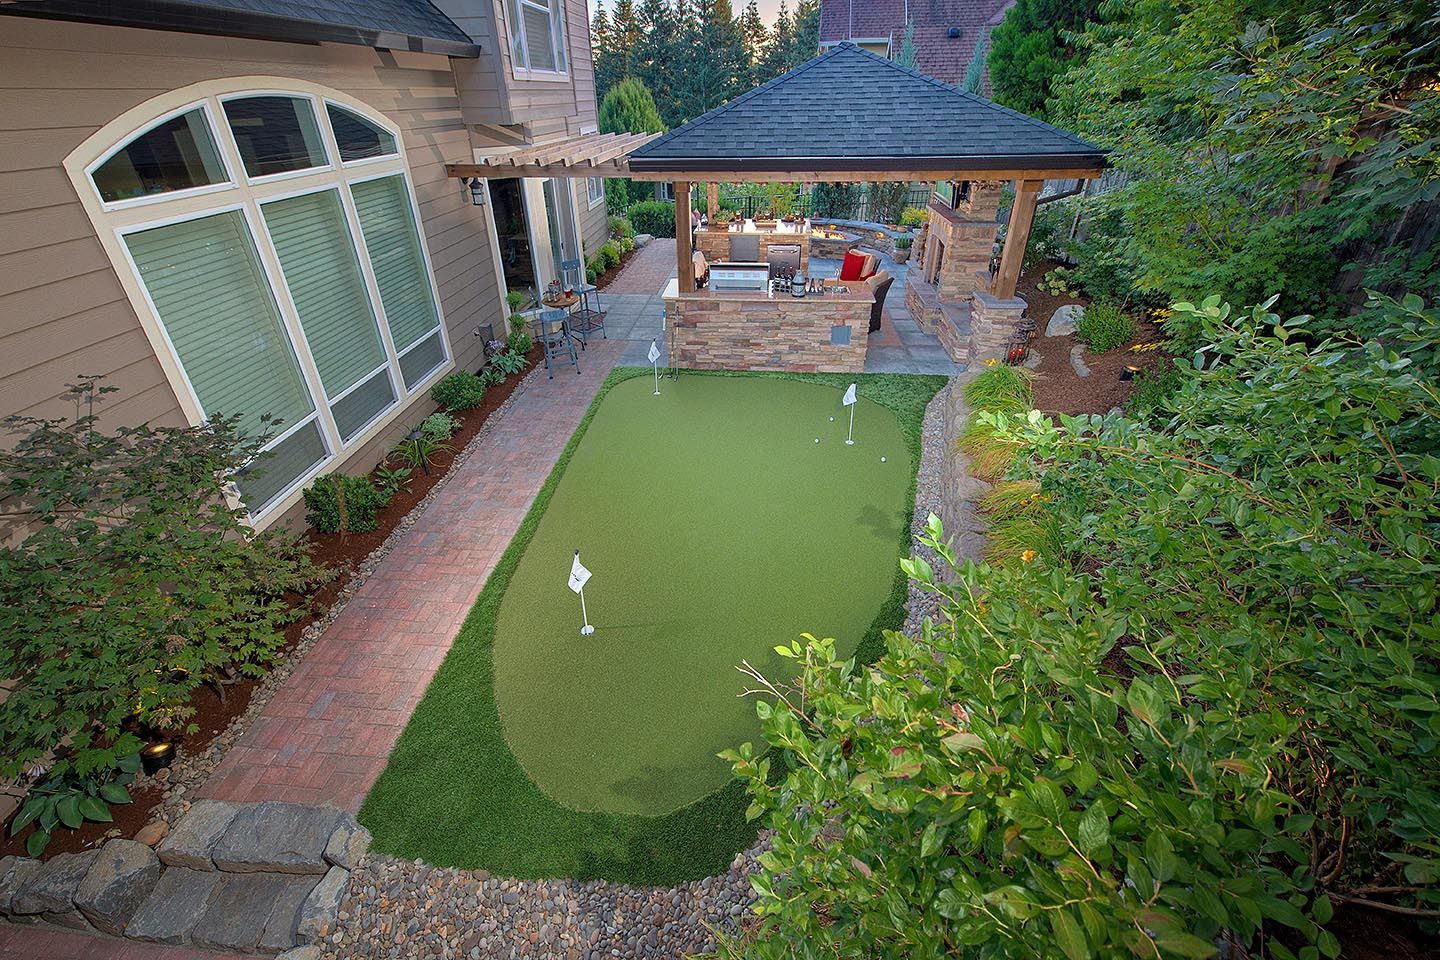 Staycation Landscape Design In Camas, Washington, By Paradise Restored  Landscaping U0026 Exterior Design In